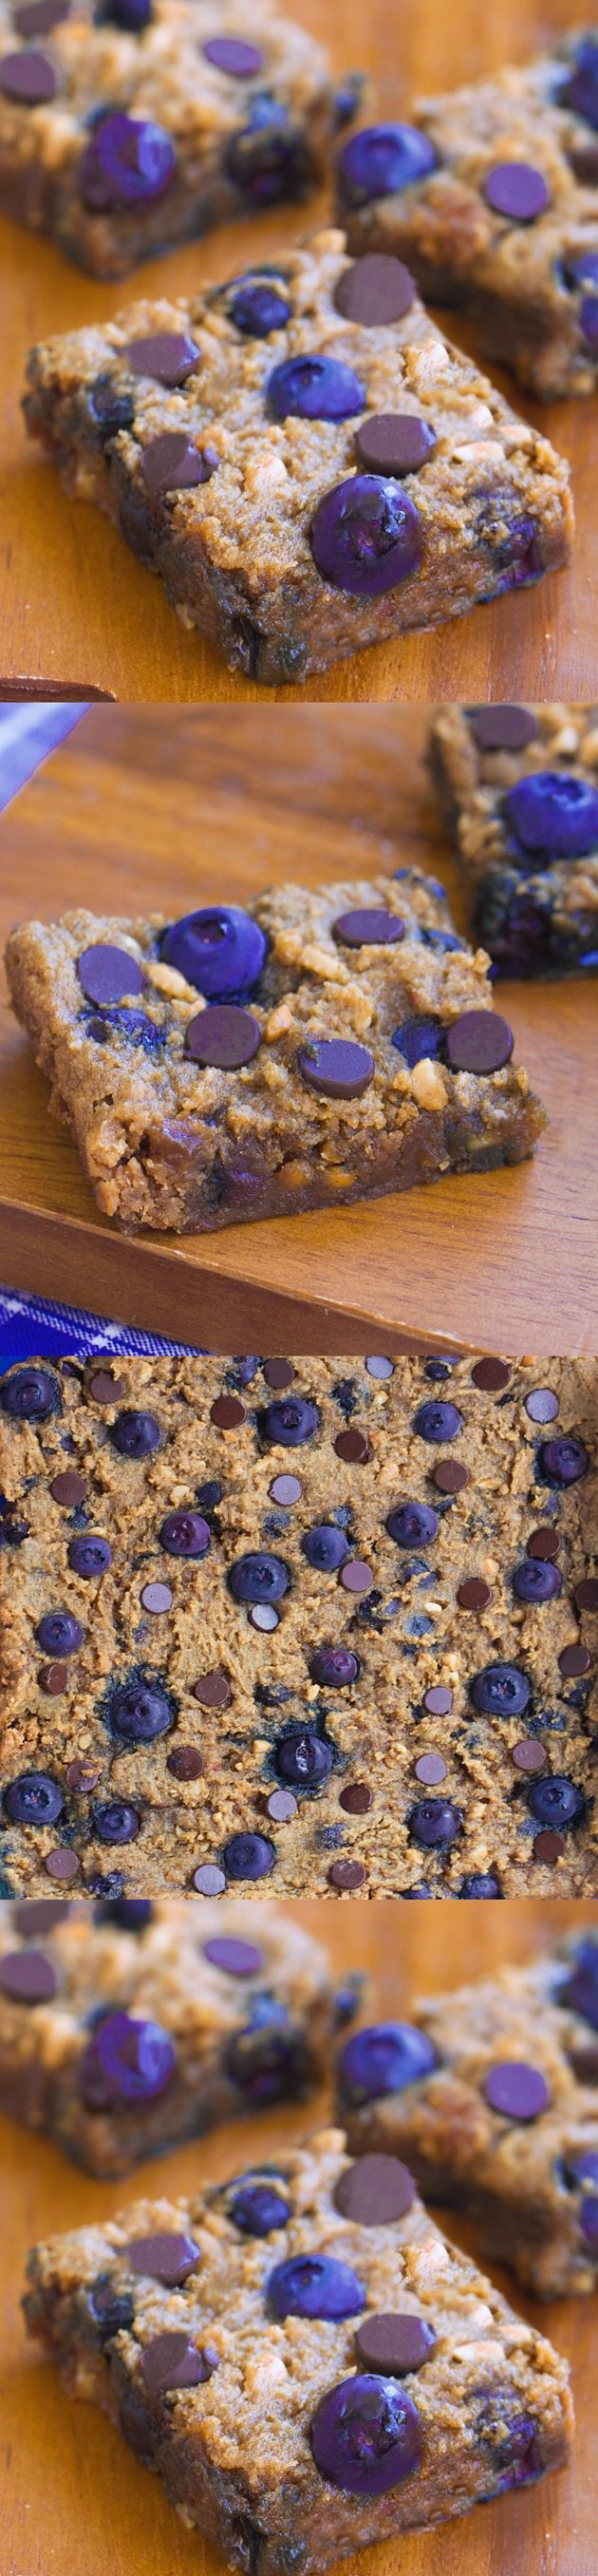 Chocolate Chip Blueberry Bars - With A Flourless Option!